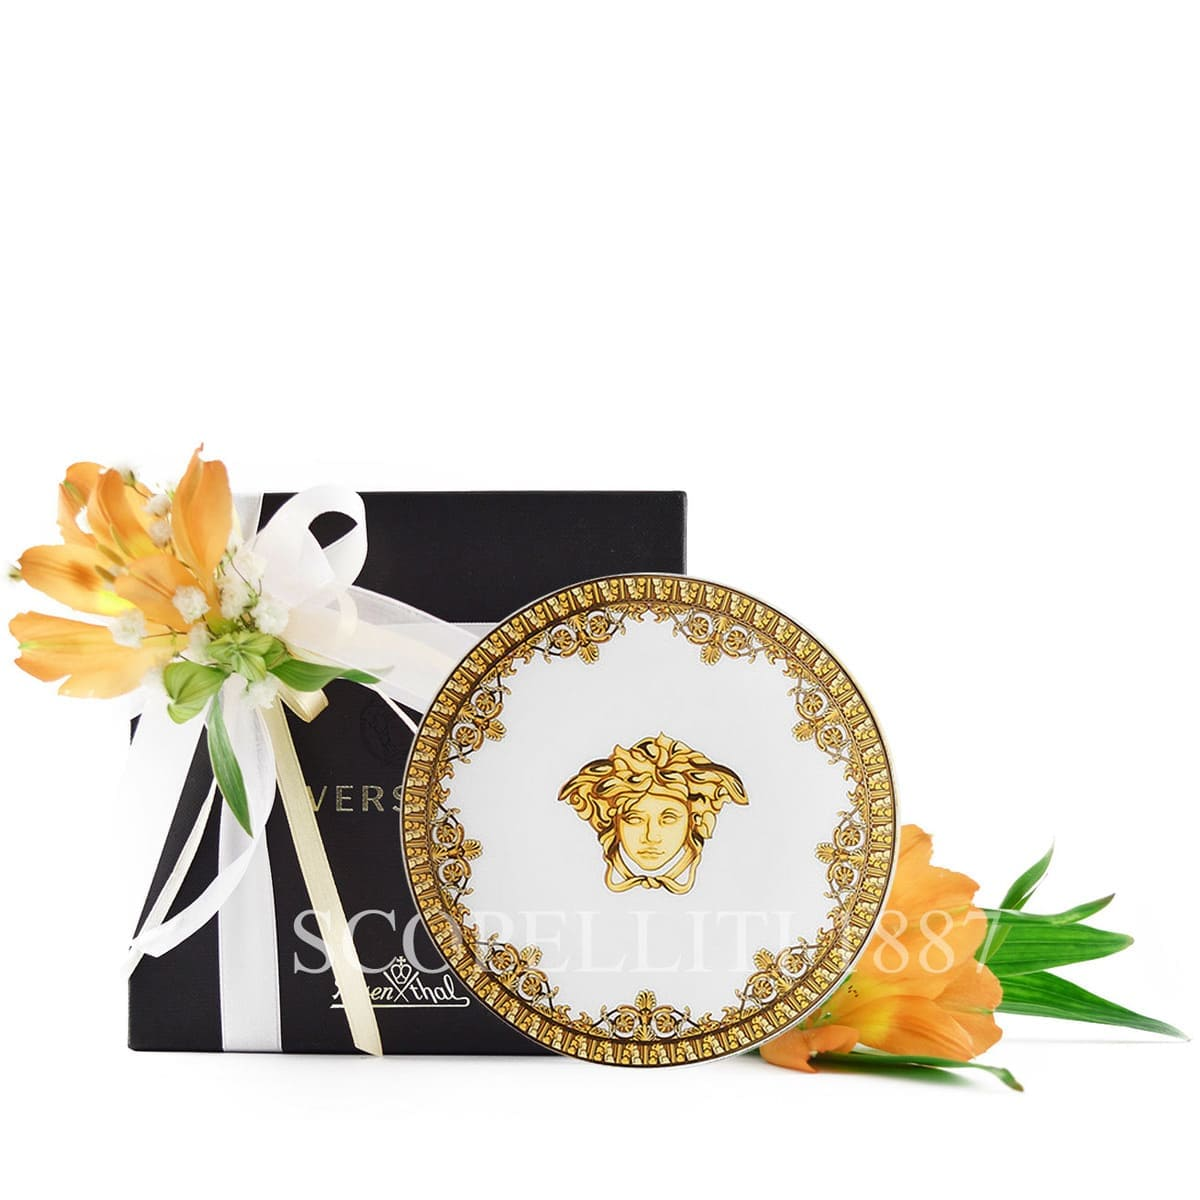 Versace I Love Baroque white small plate 10 cm by Rosenthal